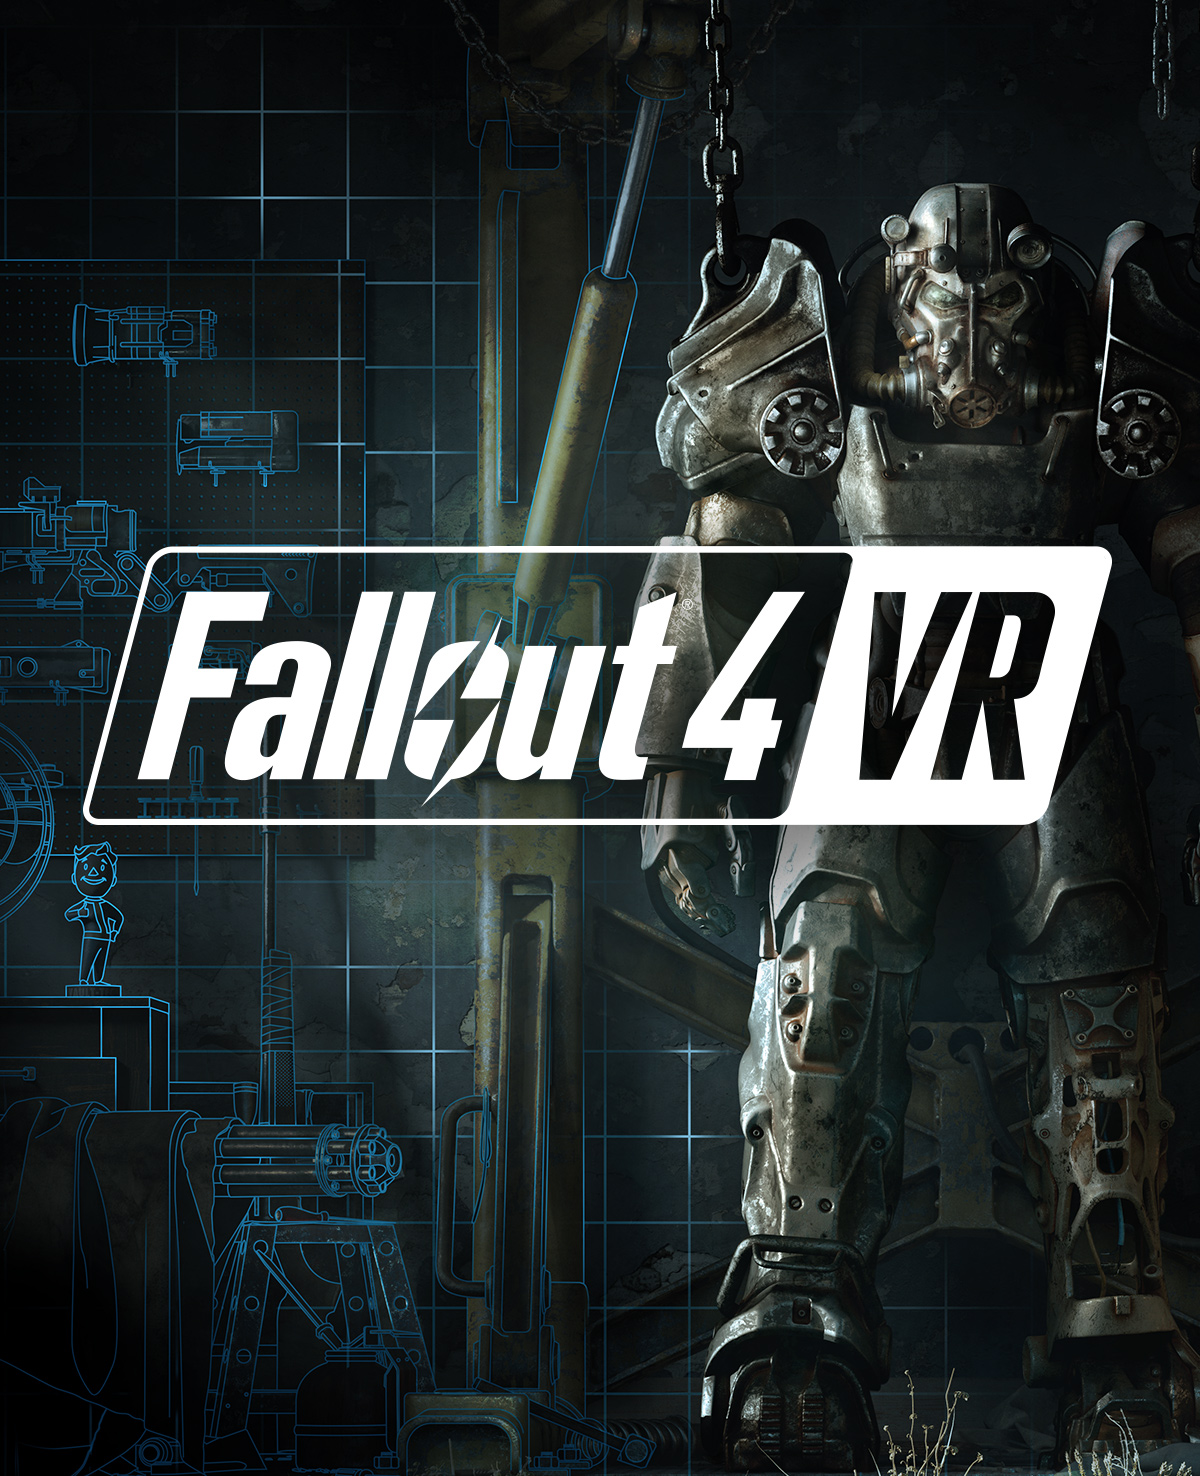 Fallout4VR_boxart-template-1200x1476.jpg